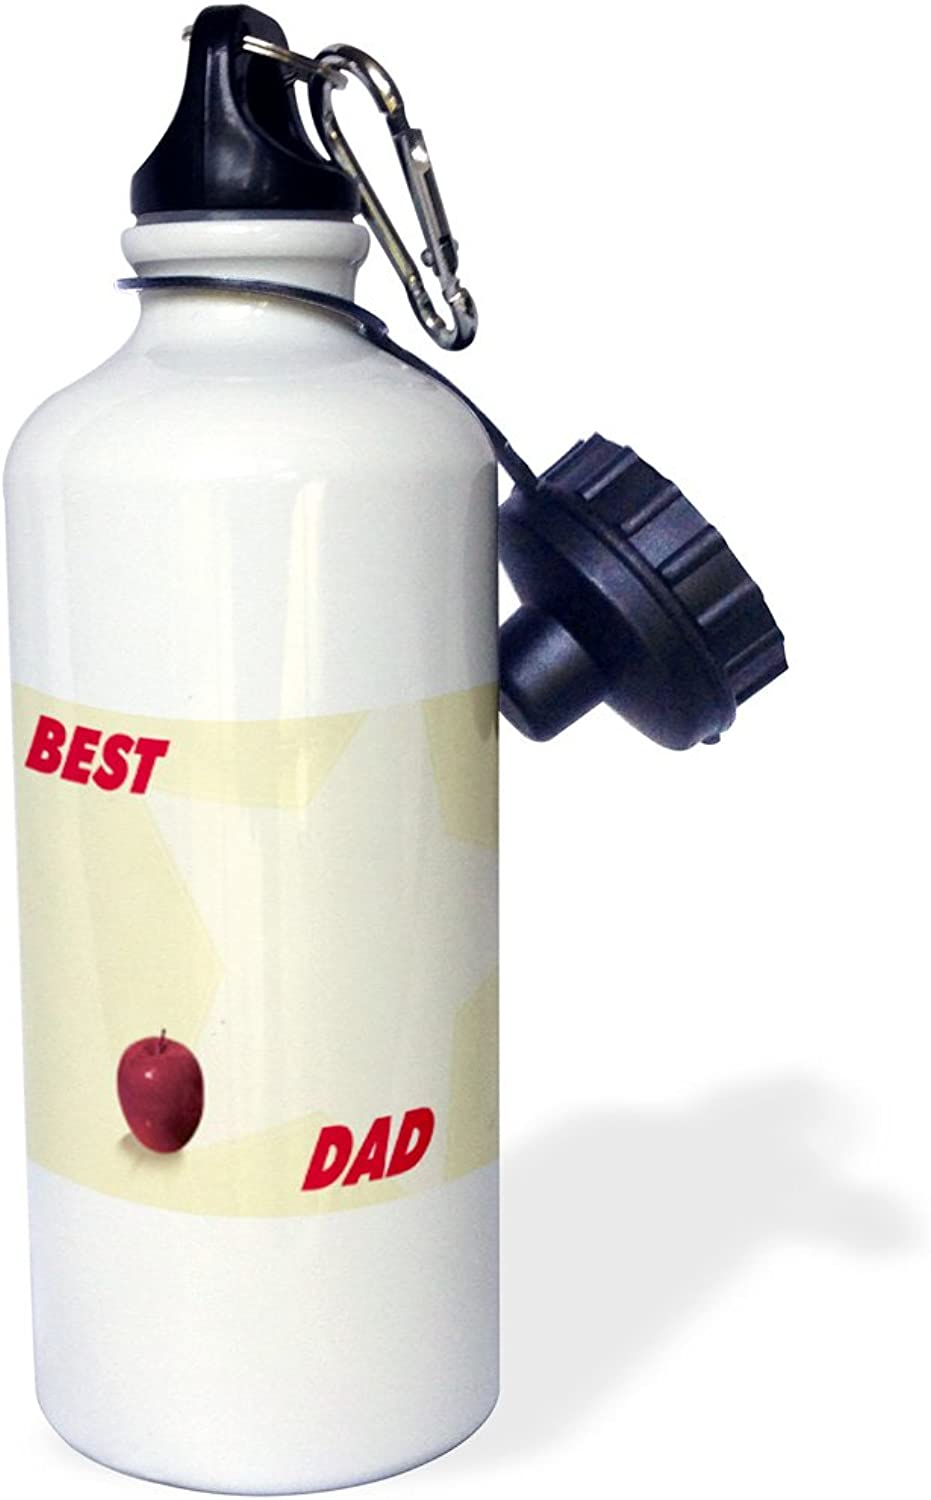 3dpink wb_35407_1 Red Apple and Star with Best Dad Words Sports Water Bottle, 21 oz, White